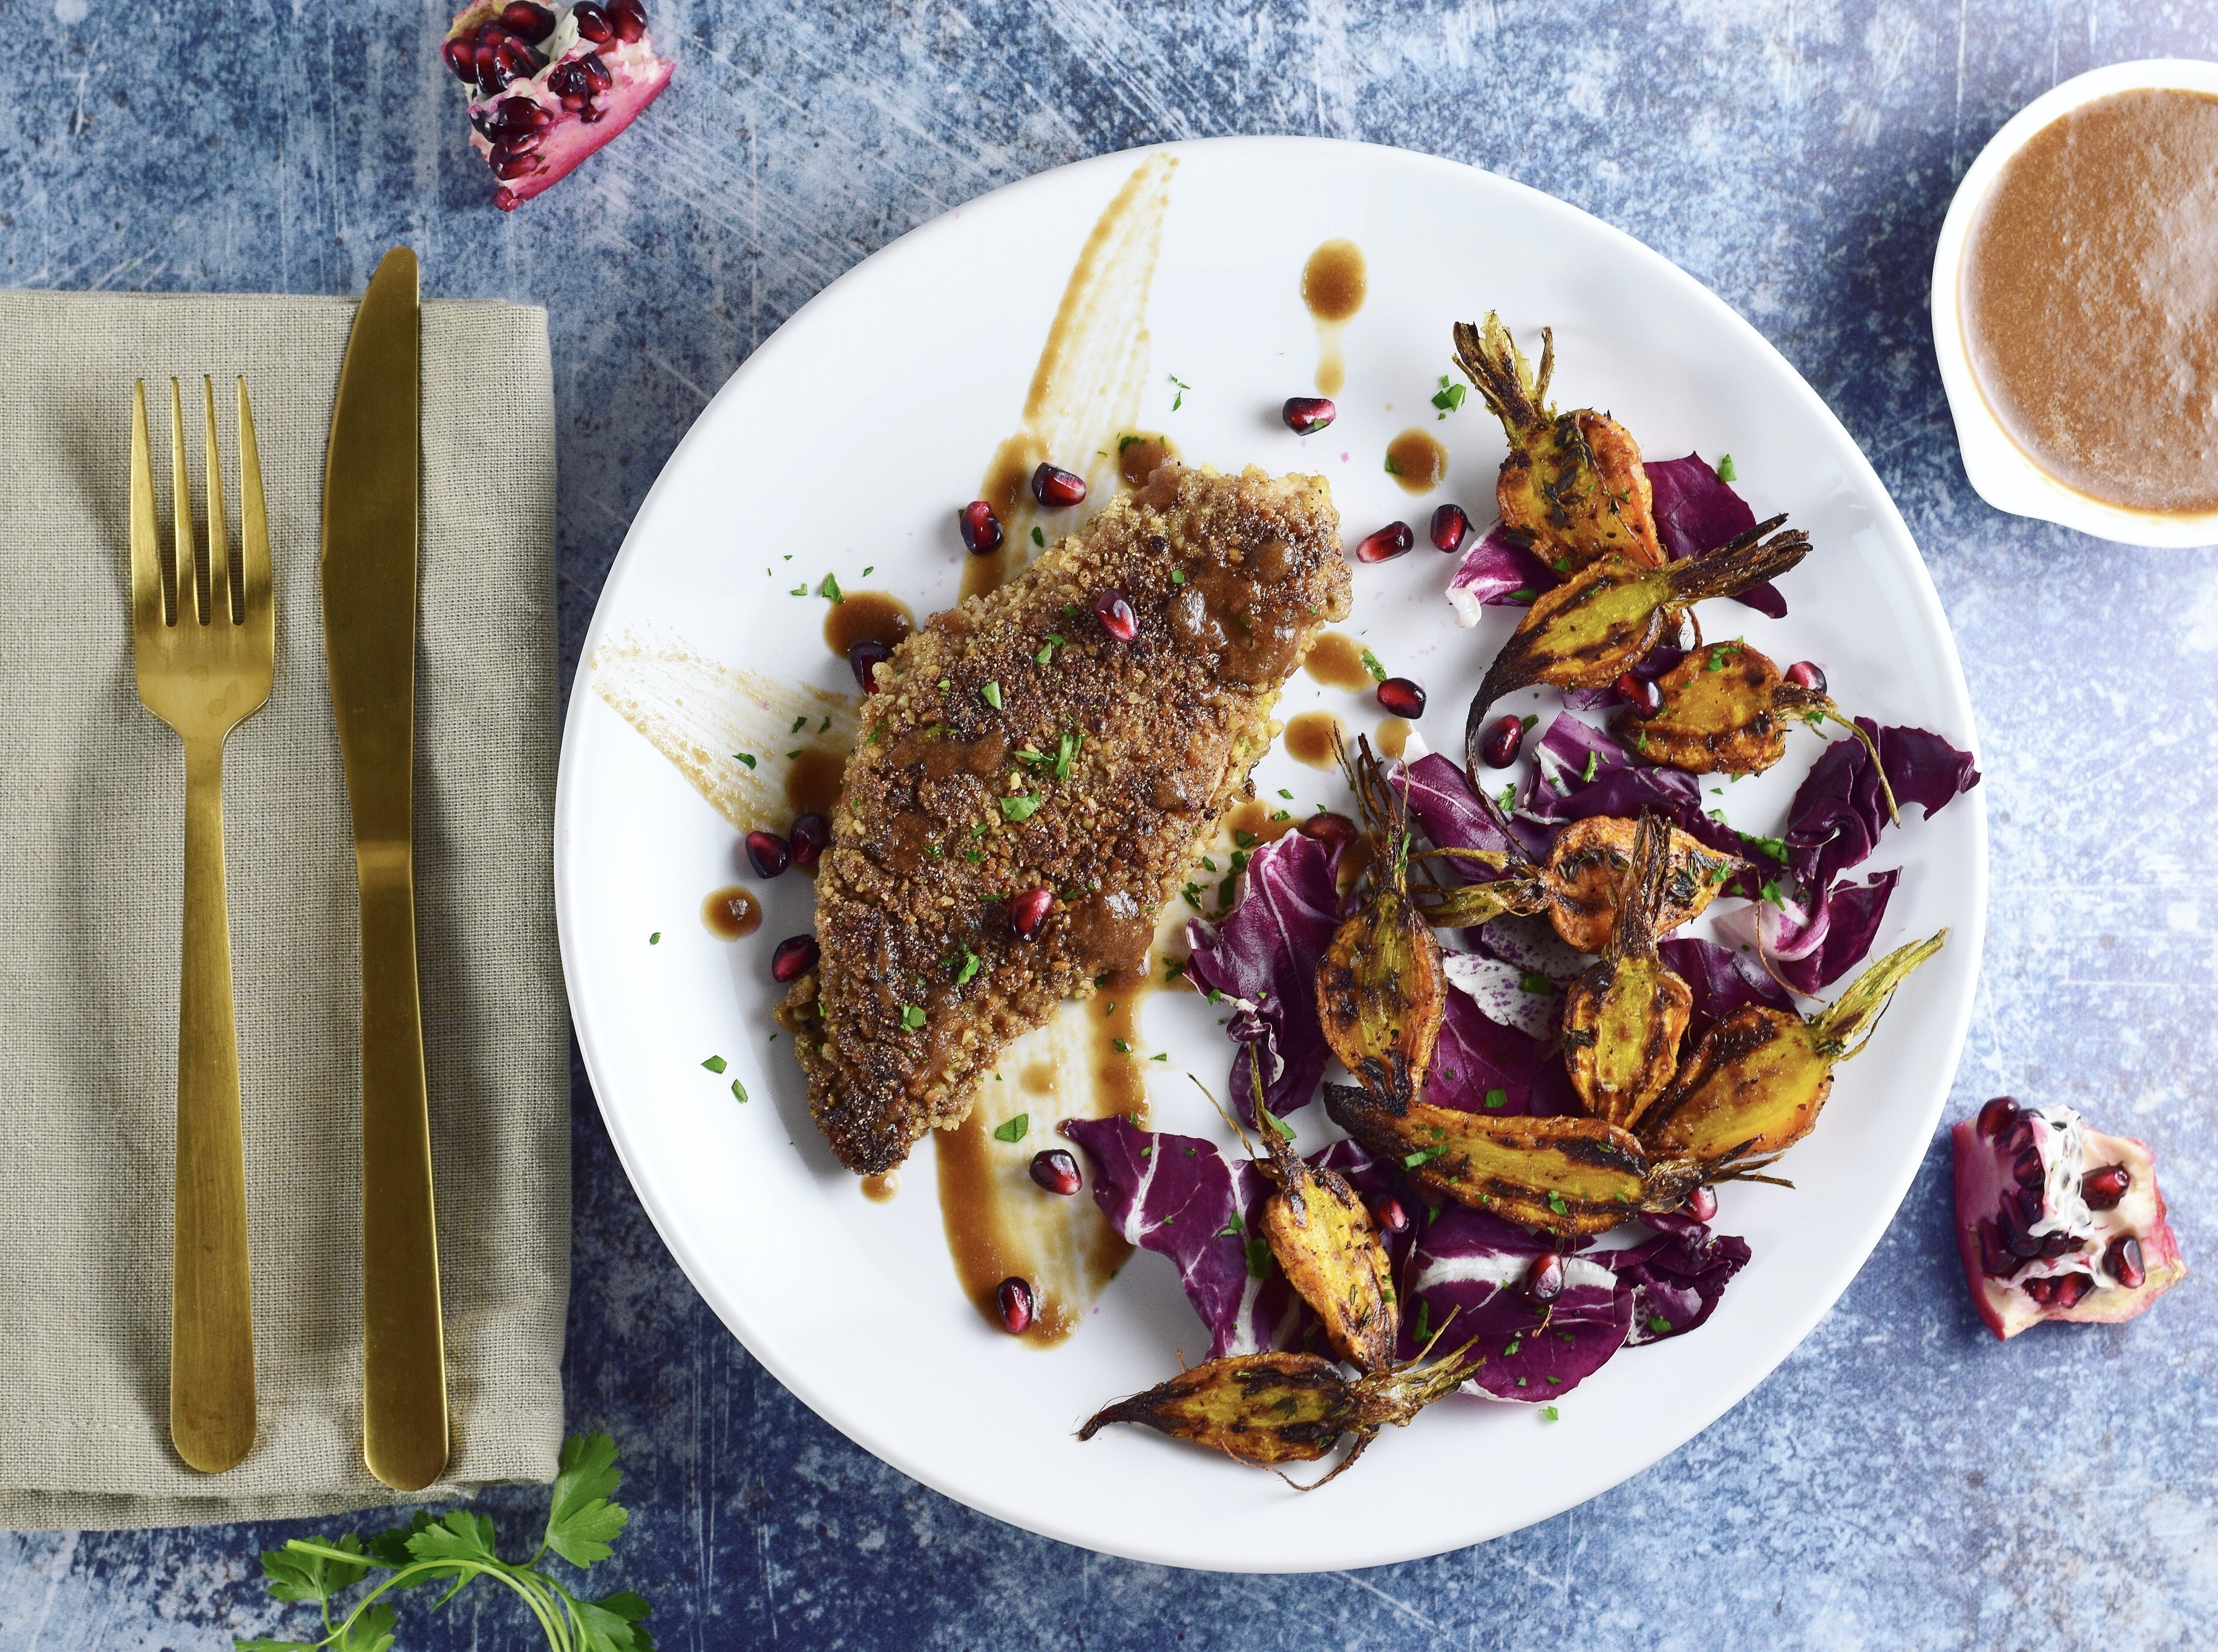 Walnut Crusted Chicken Breasts With Persian Spices And Pomegranate Sauce